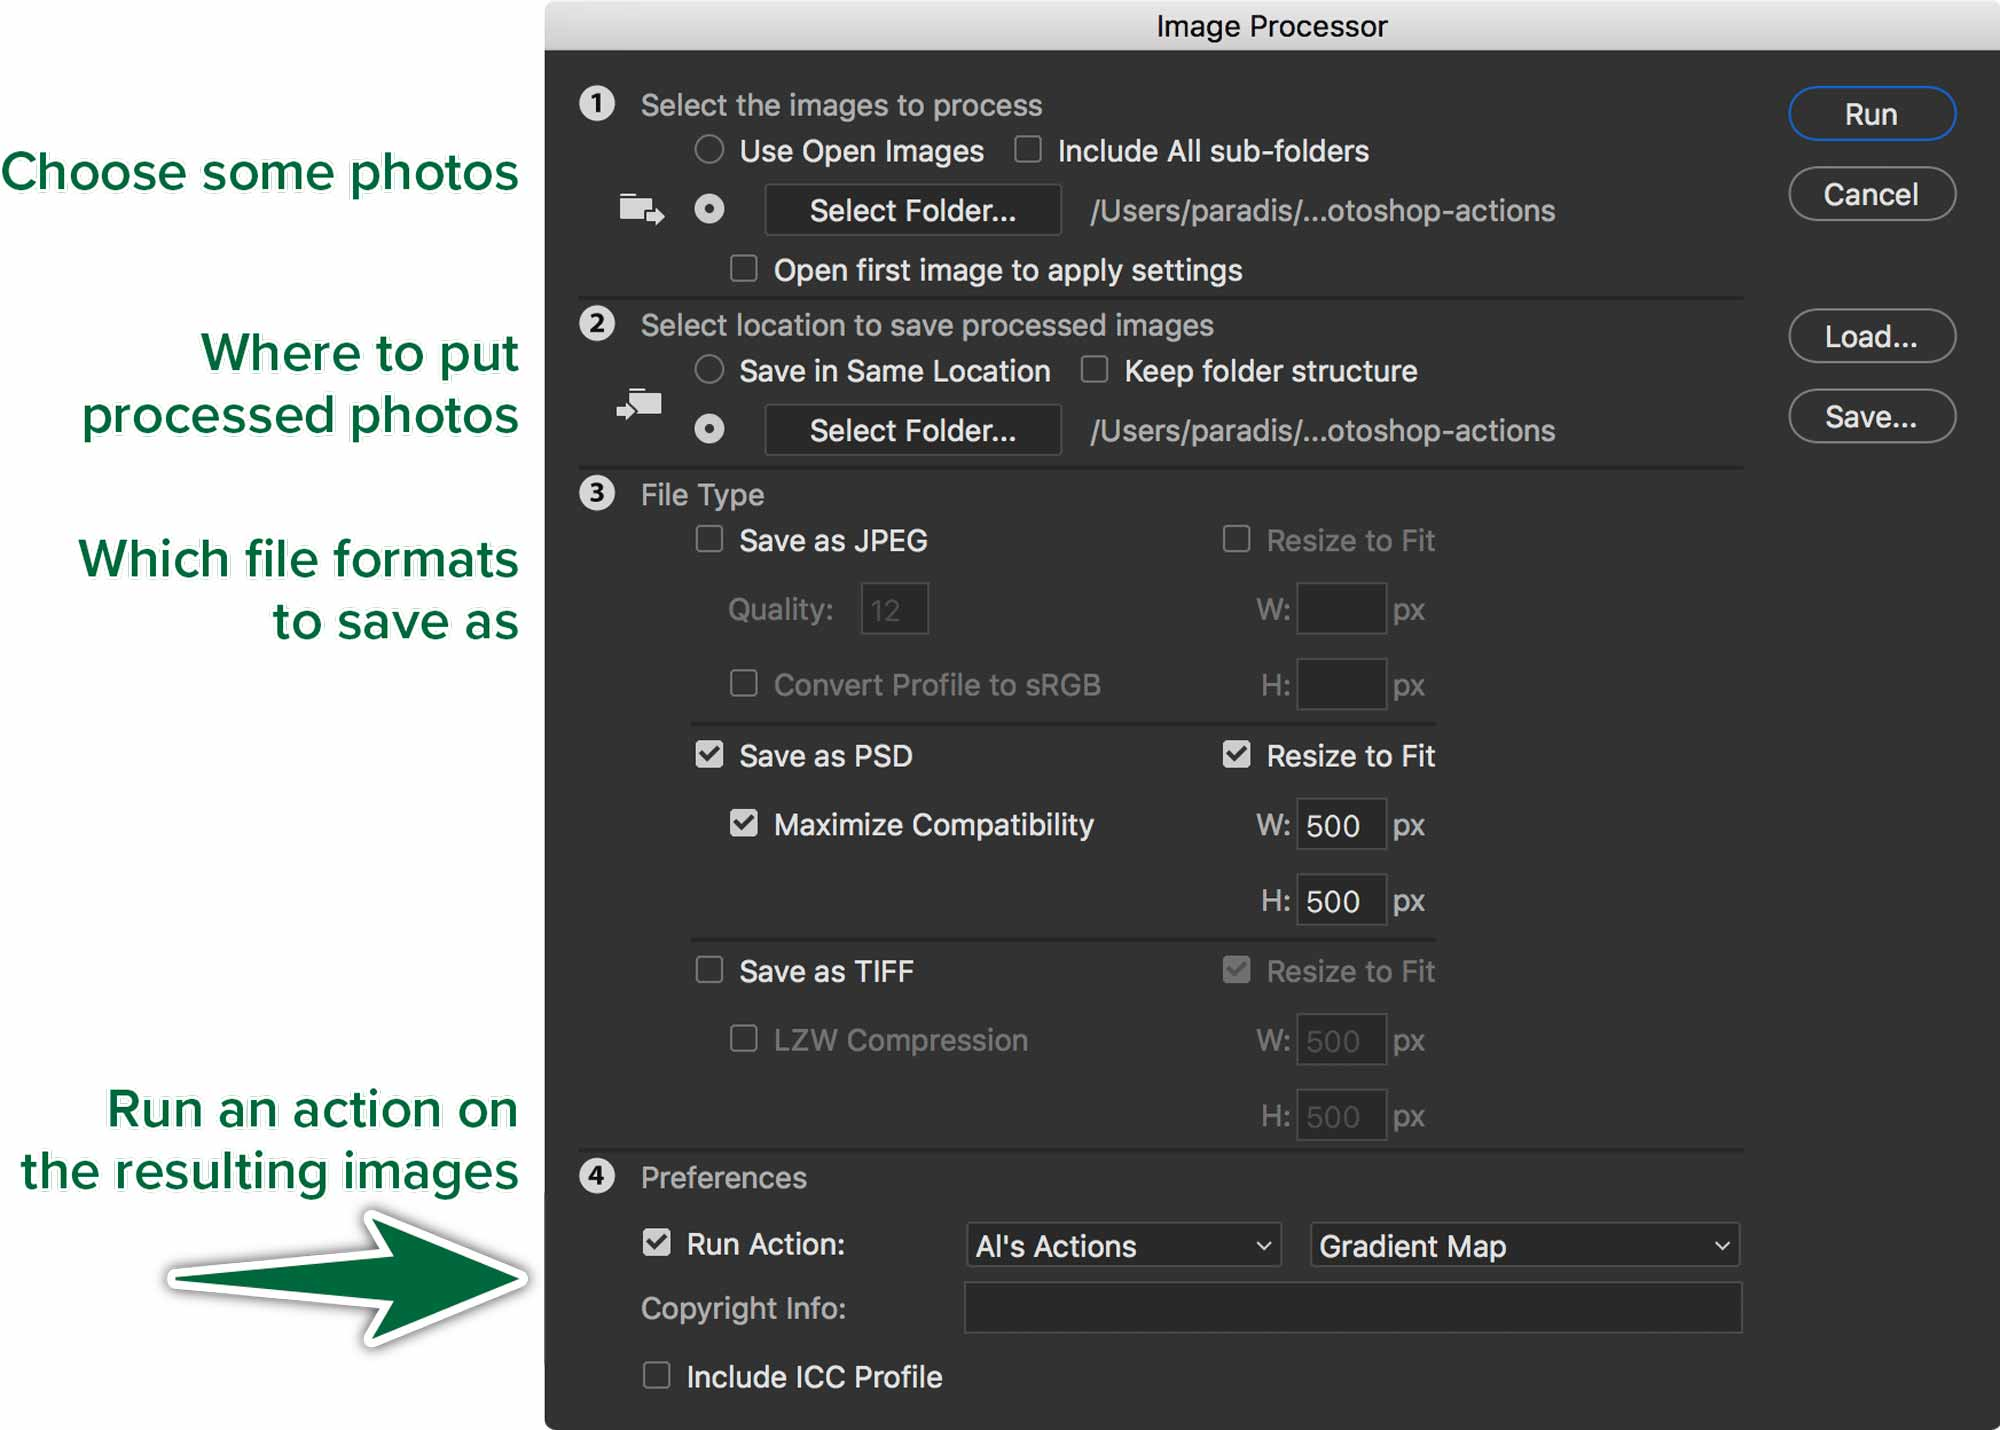 photoshop-actions-image-processor-actions